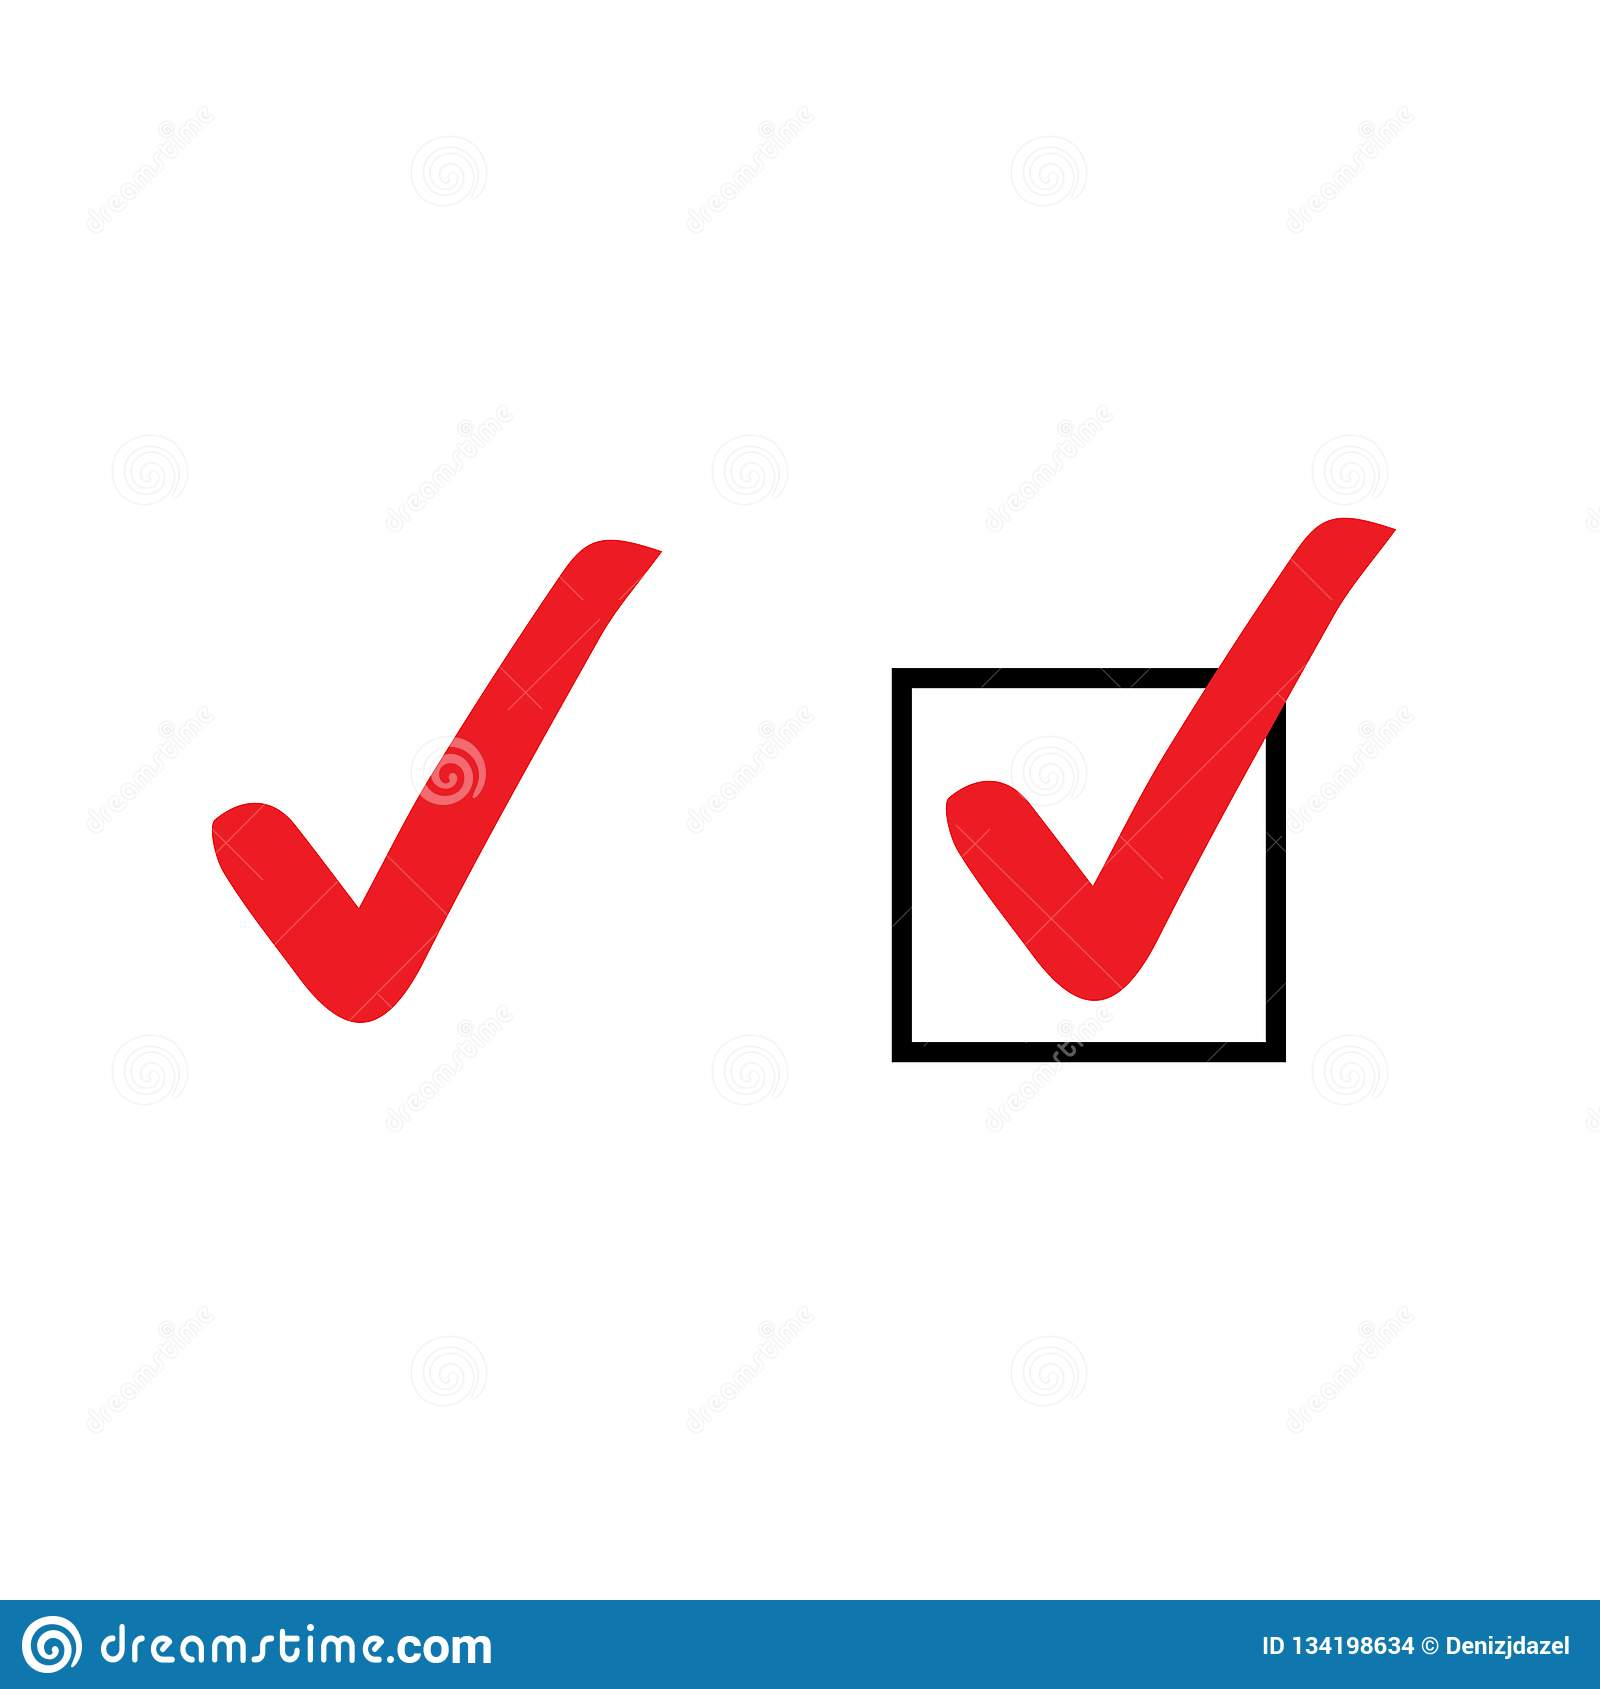 Set of red tick icons. Vector symbols set, checkmarks collection isolated on white background. Checked icon or correct choice sign